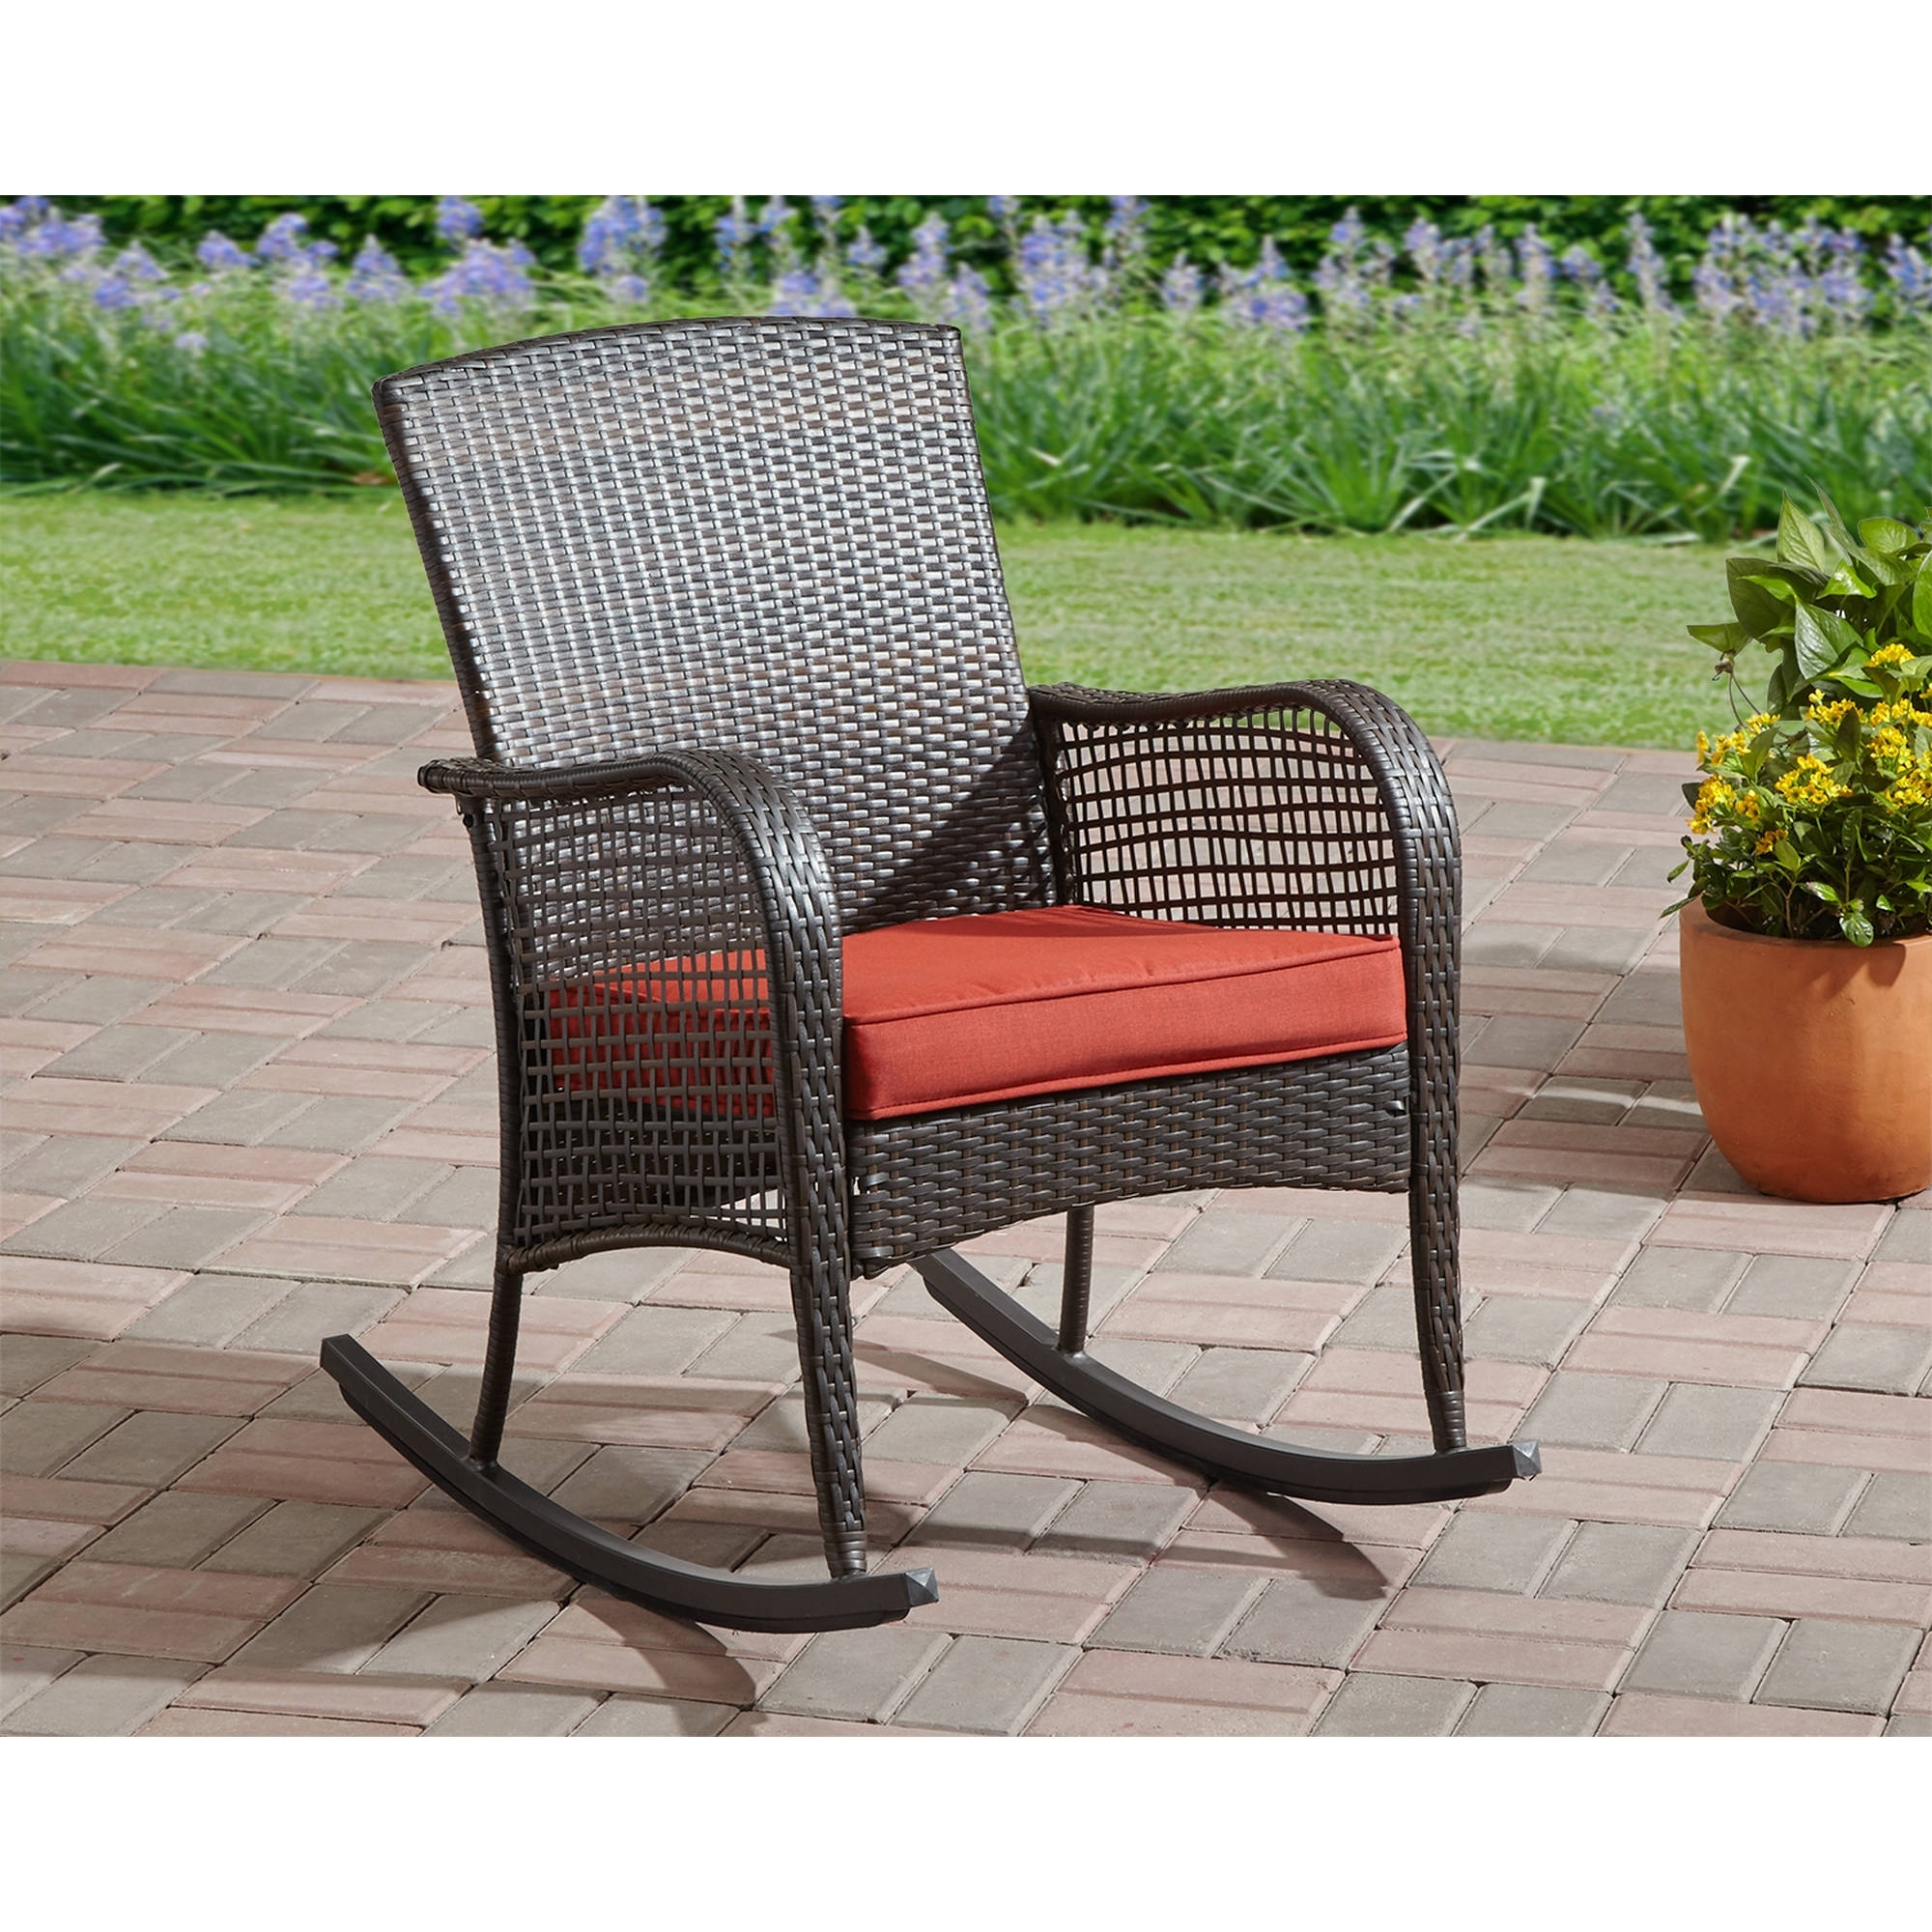 Mainstays Cambridge Park Wicker Outdoor Rocking Chair – Walmart Inside Patio Rocking Chairs With Covers (View 9 of 15)